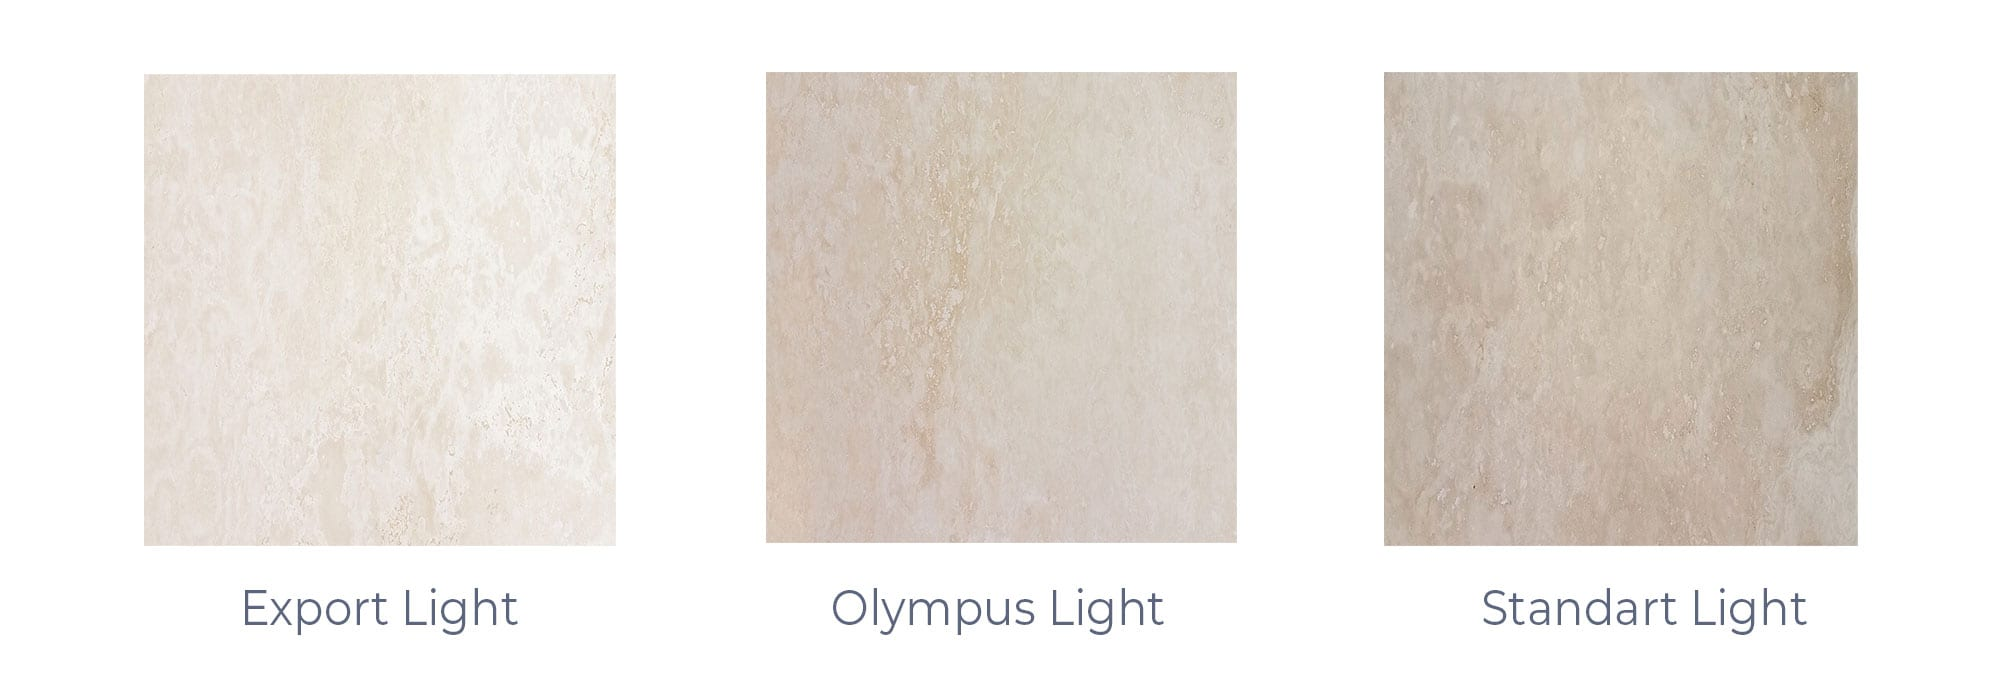 Stoneline-Group-Olympus-Marble-Collection-Marble-Export-Light-Olympus-Light-Standart-Light-Pictures